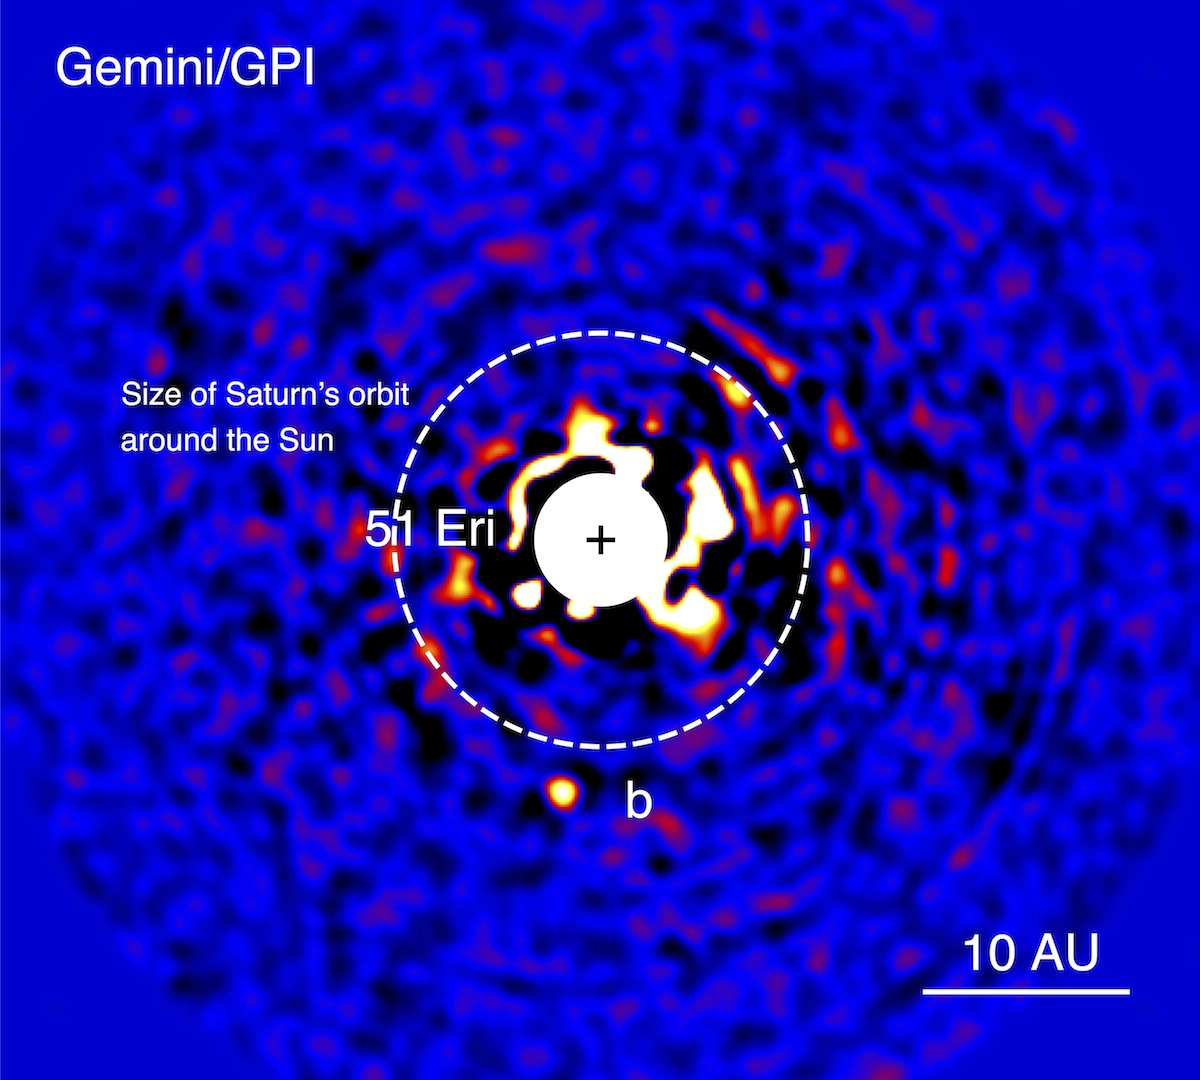 First Discovery for a New Planet Finder